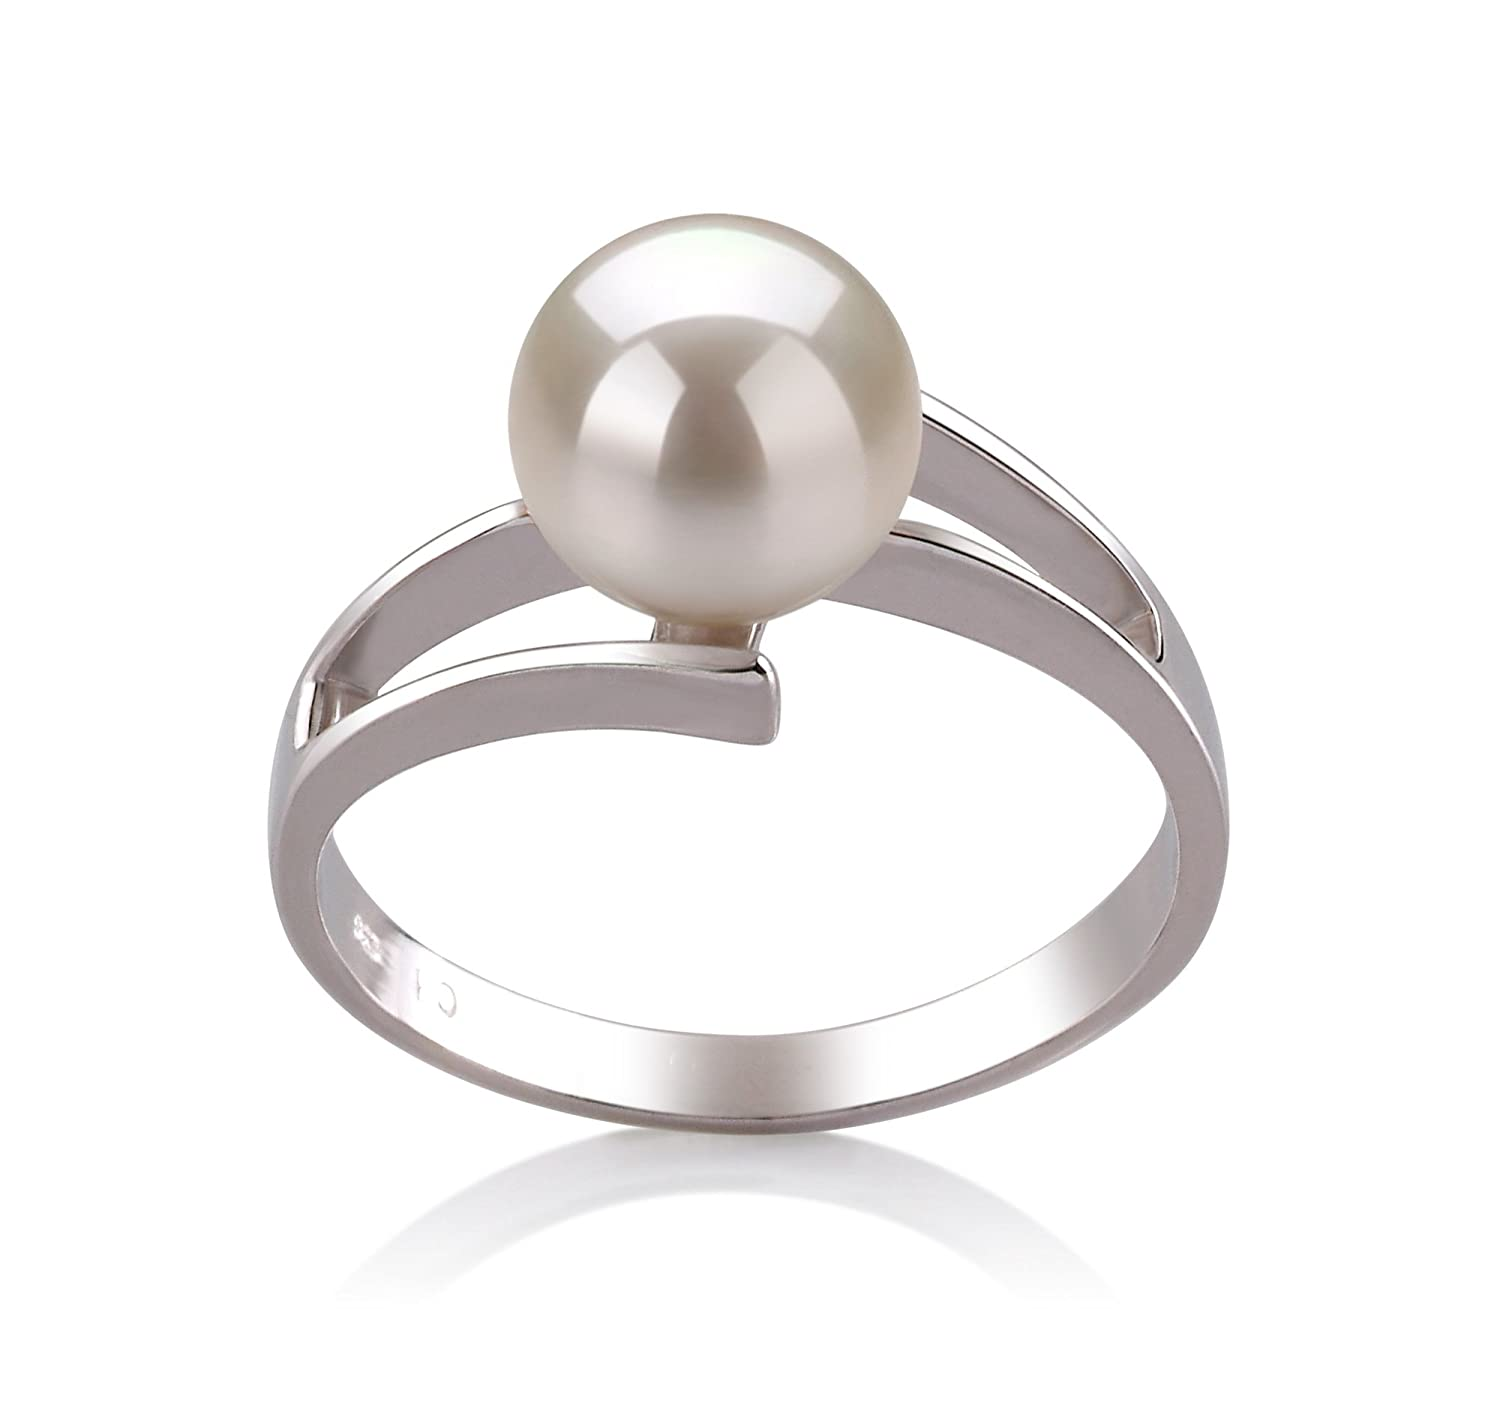 White 7-8mm AAA Quality Freshwater 925 Sterling Silver Cultured Pearl Ring